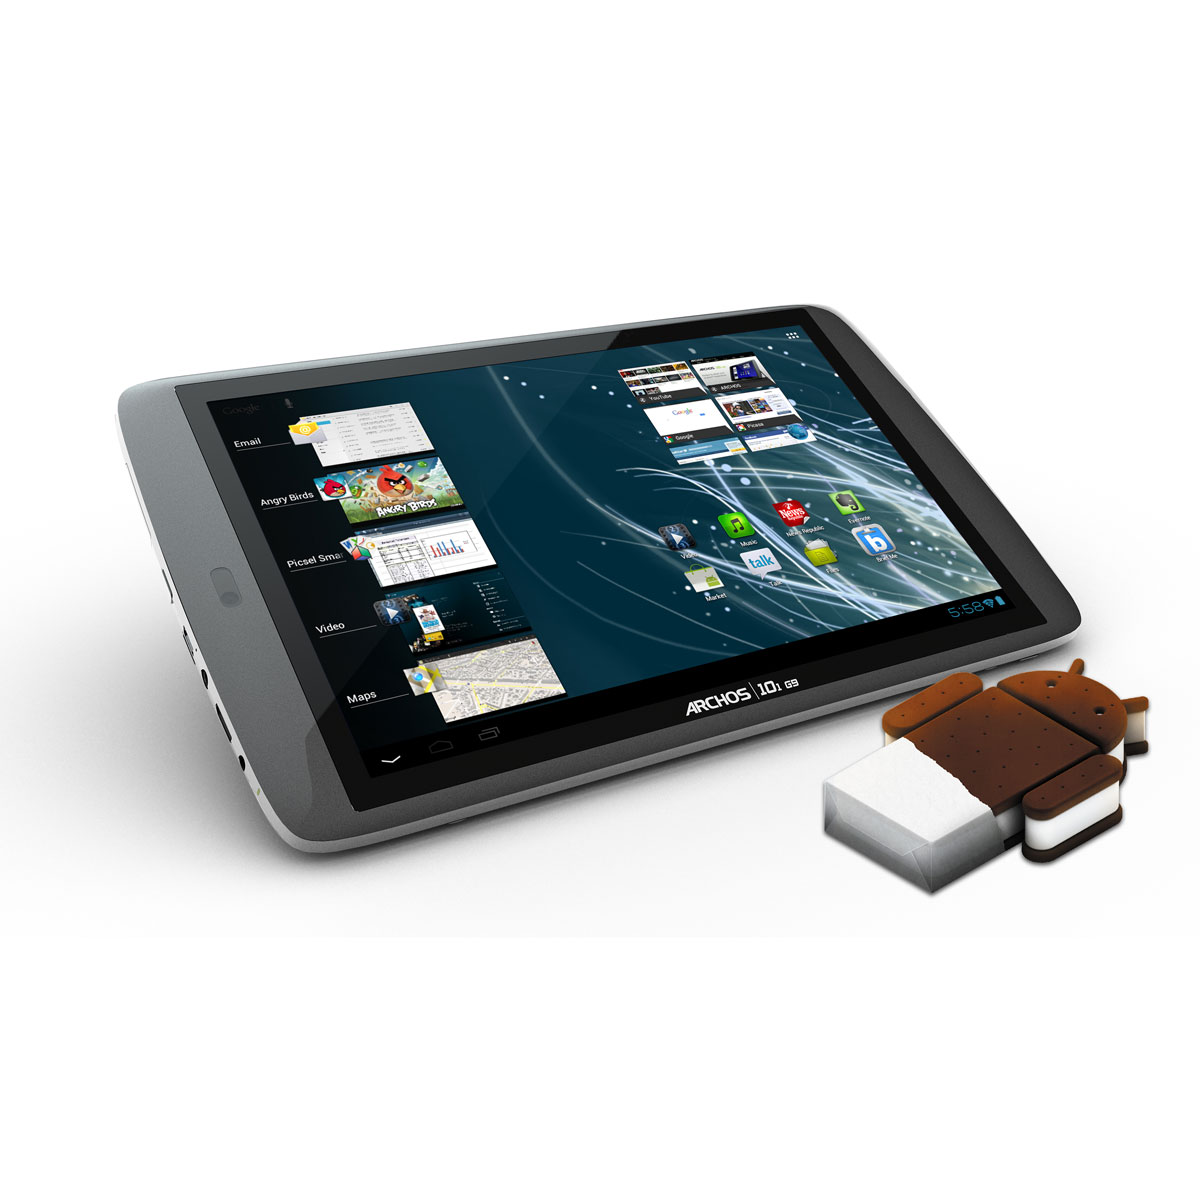 archos 101 g9 turbo ics 16 go tablette tactile archos sur ldlc. Black Bedroom Furniture Sets. Home Design Ideas